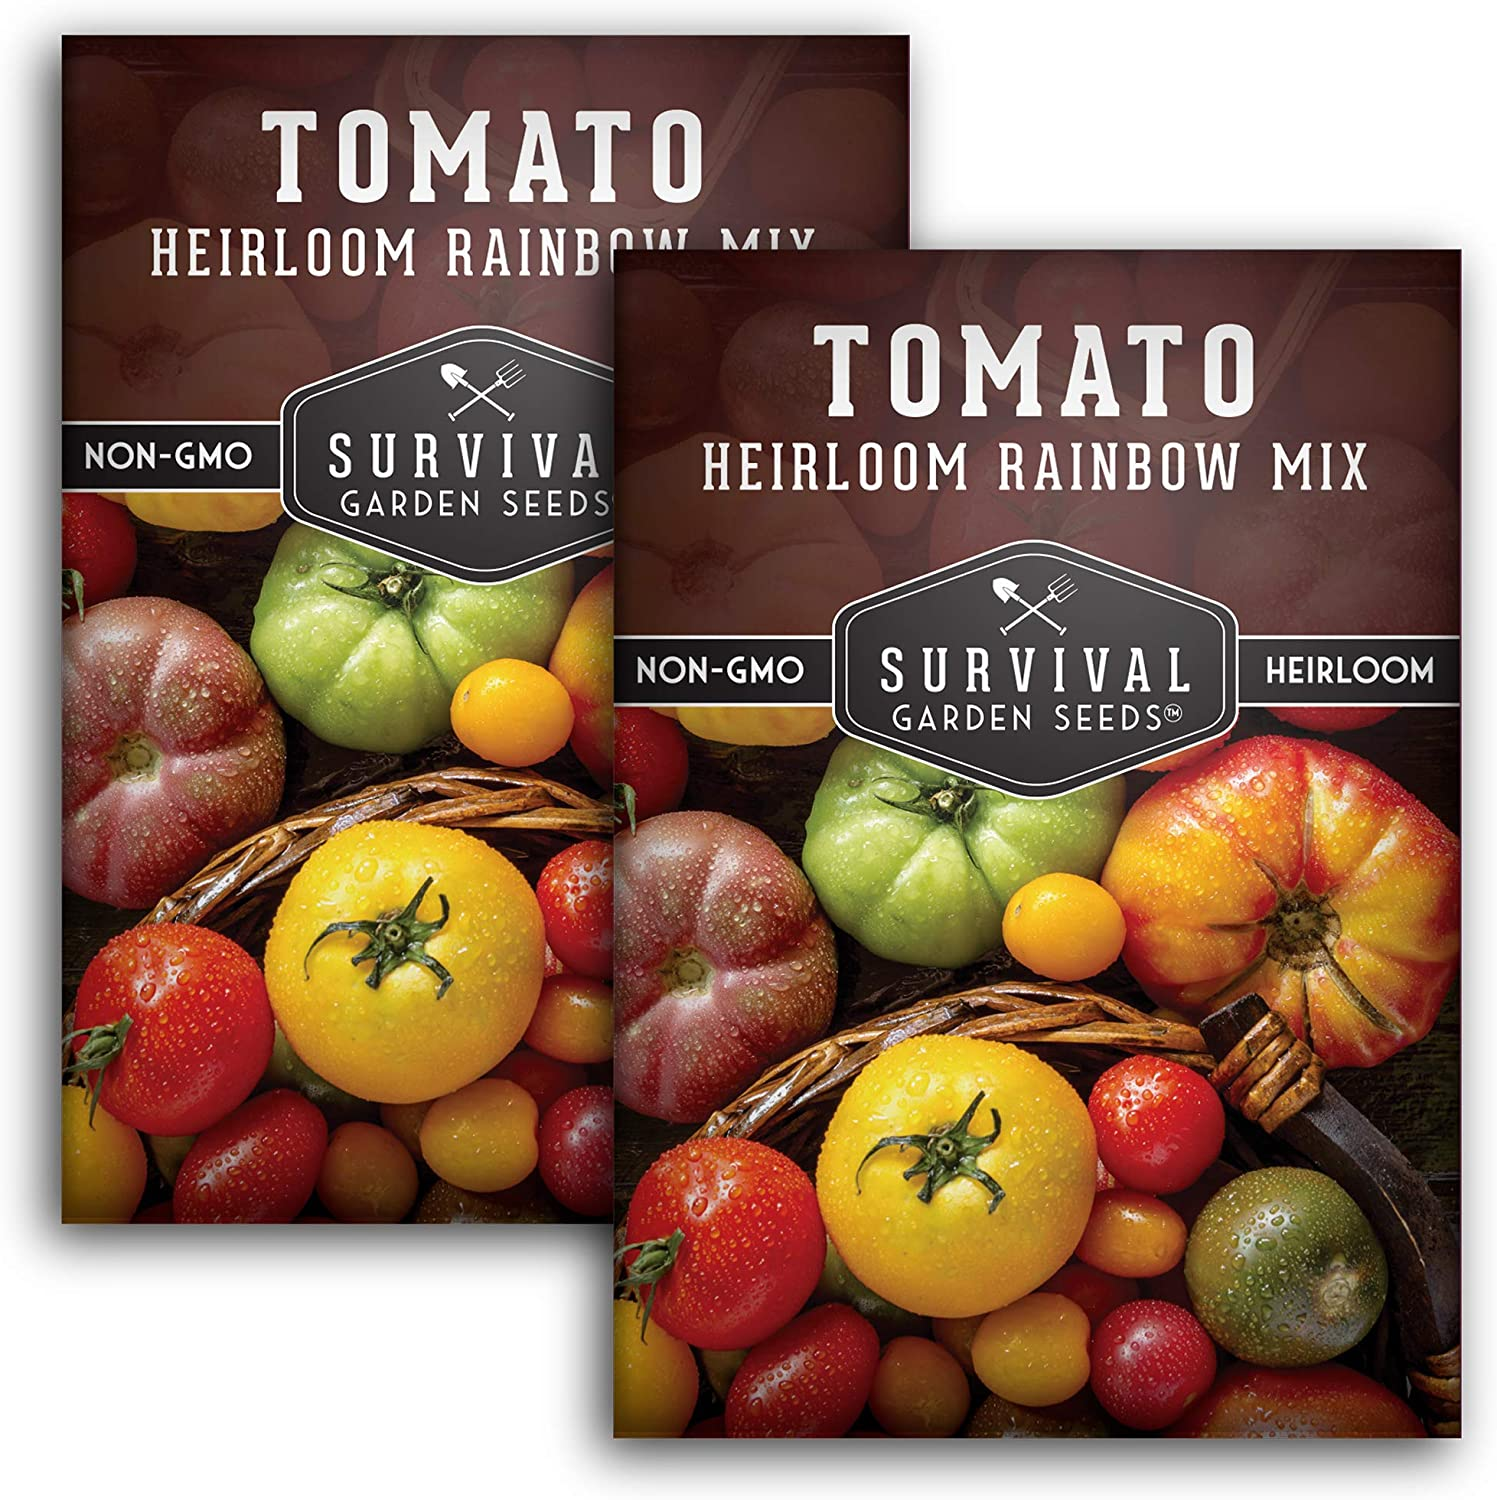 Survival Garden Seeds - Heirloom Rainbow Mix Tomato Seed for Planting - 2 Packets with Instructions to Plant and Grow in Your Home Vegetable Garden - Non-GMO Heirloom Variety